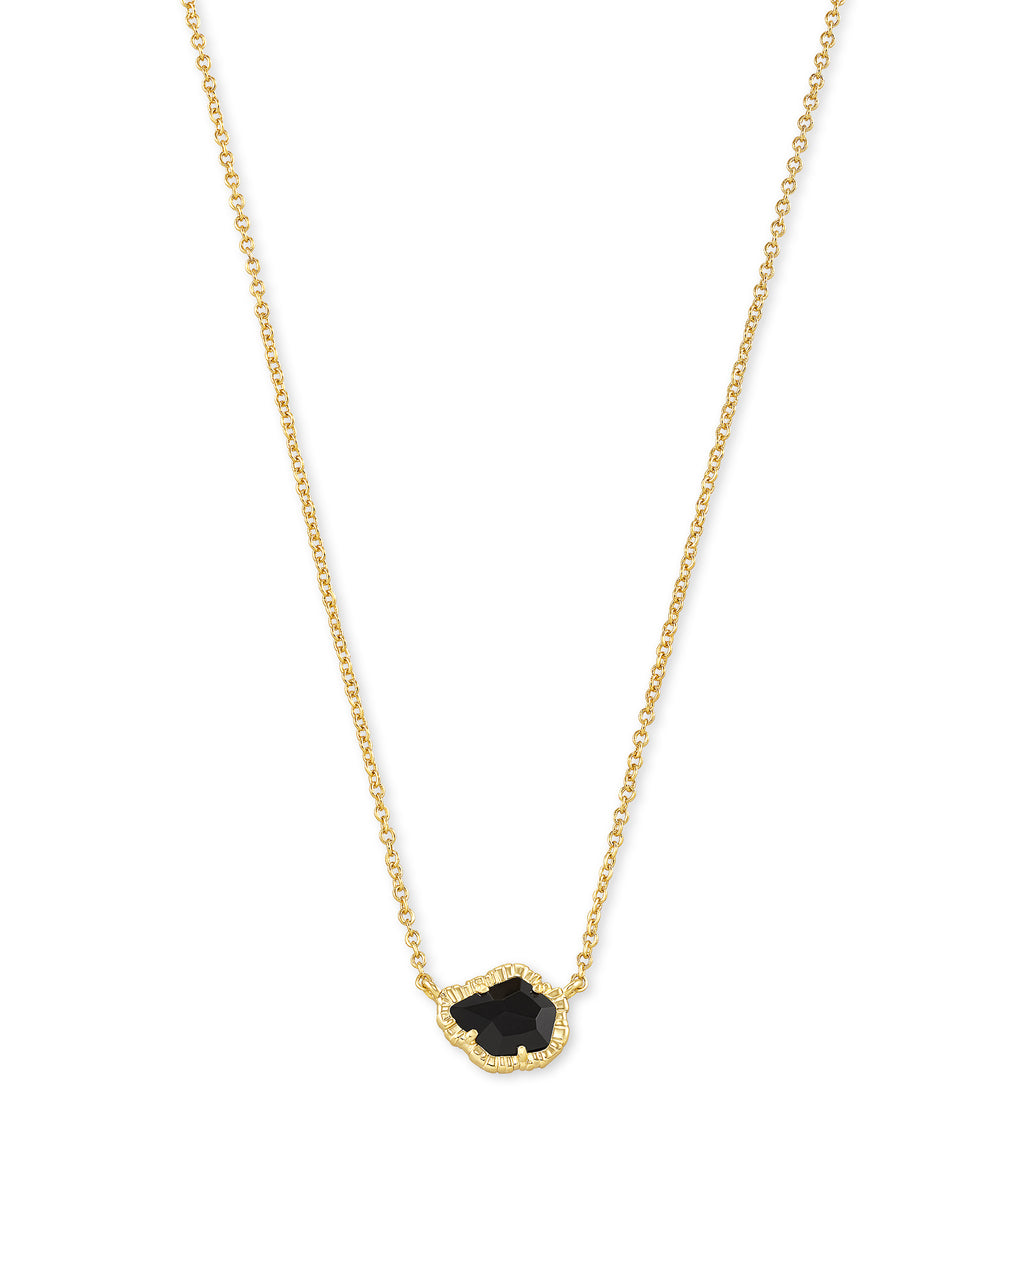 Tessa Small Pendant Necklace in Gold Black Obsidian